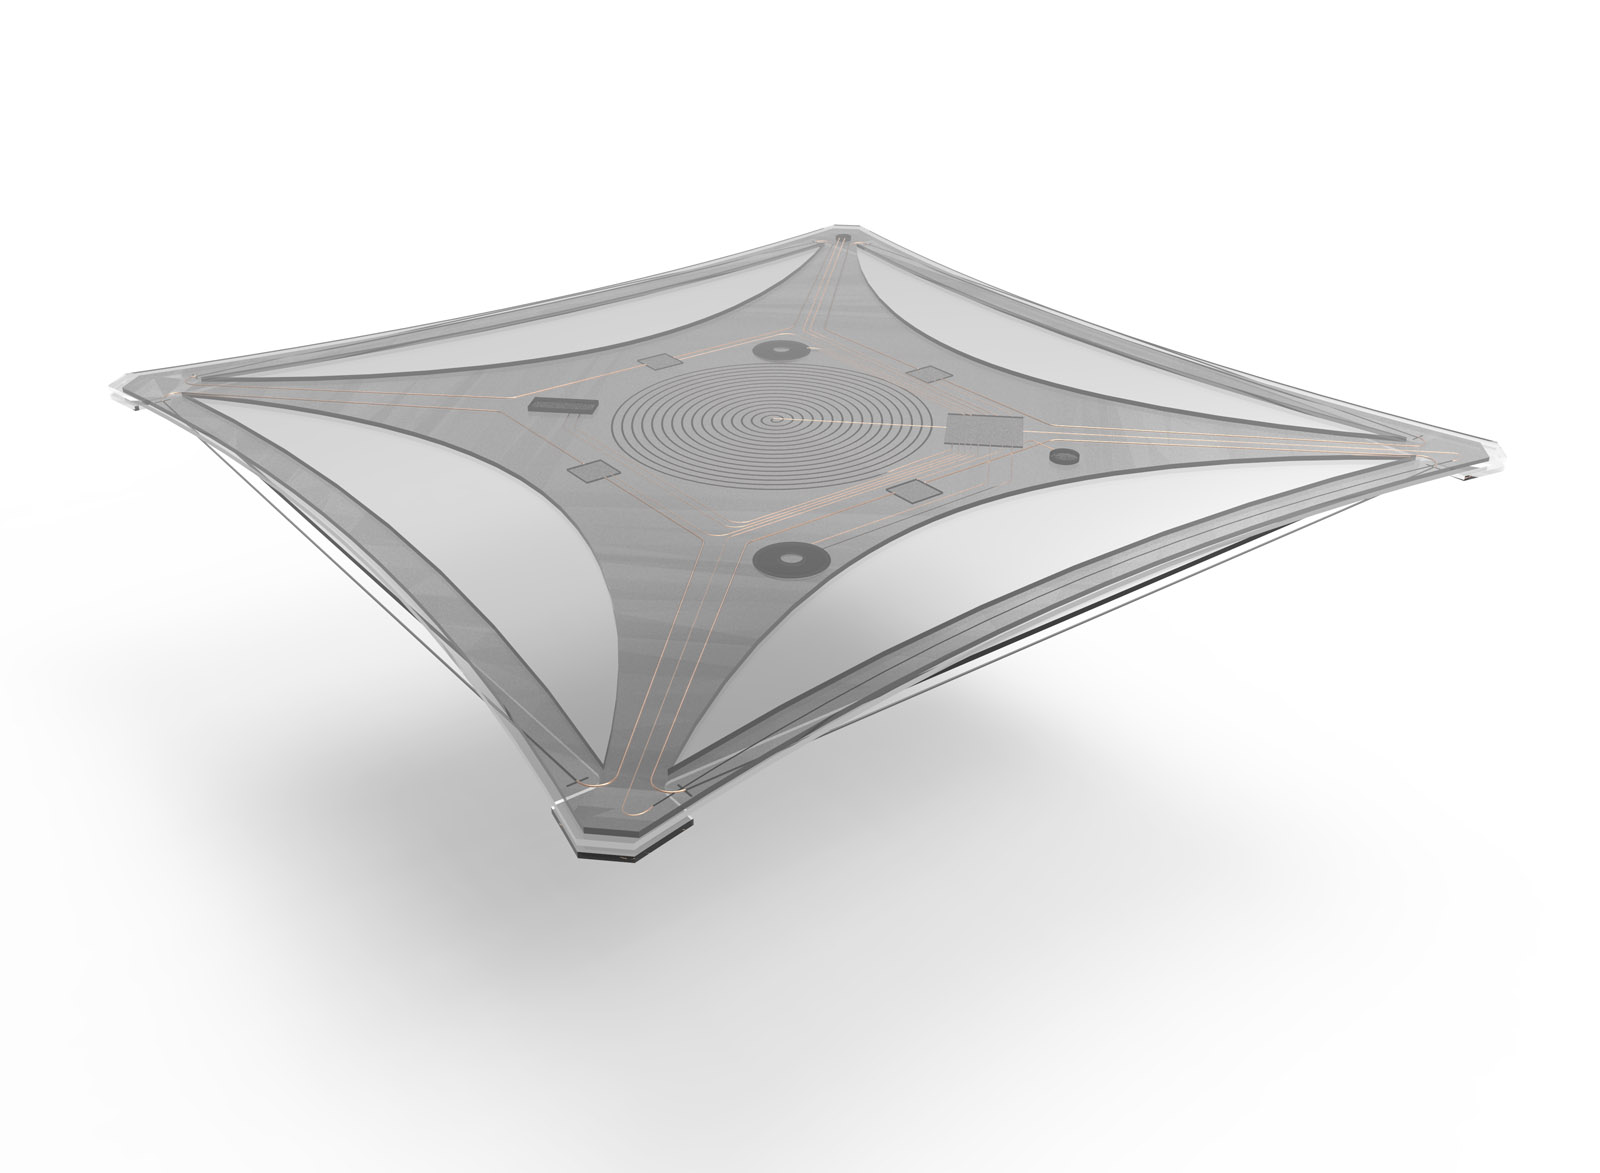 A flexible, shape-memory tray – laminated structure with integrated actuator, sensor technology and control electronics.